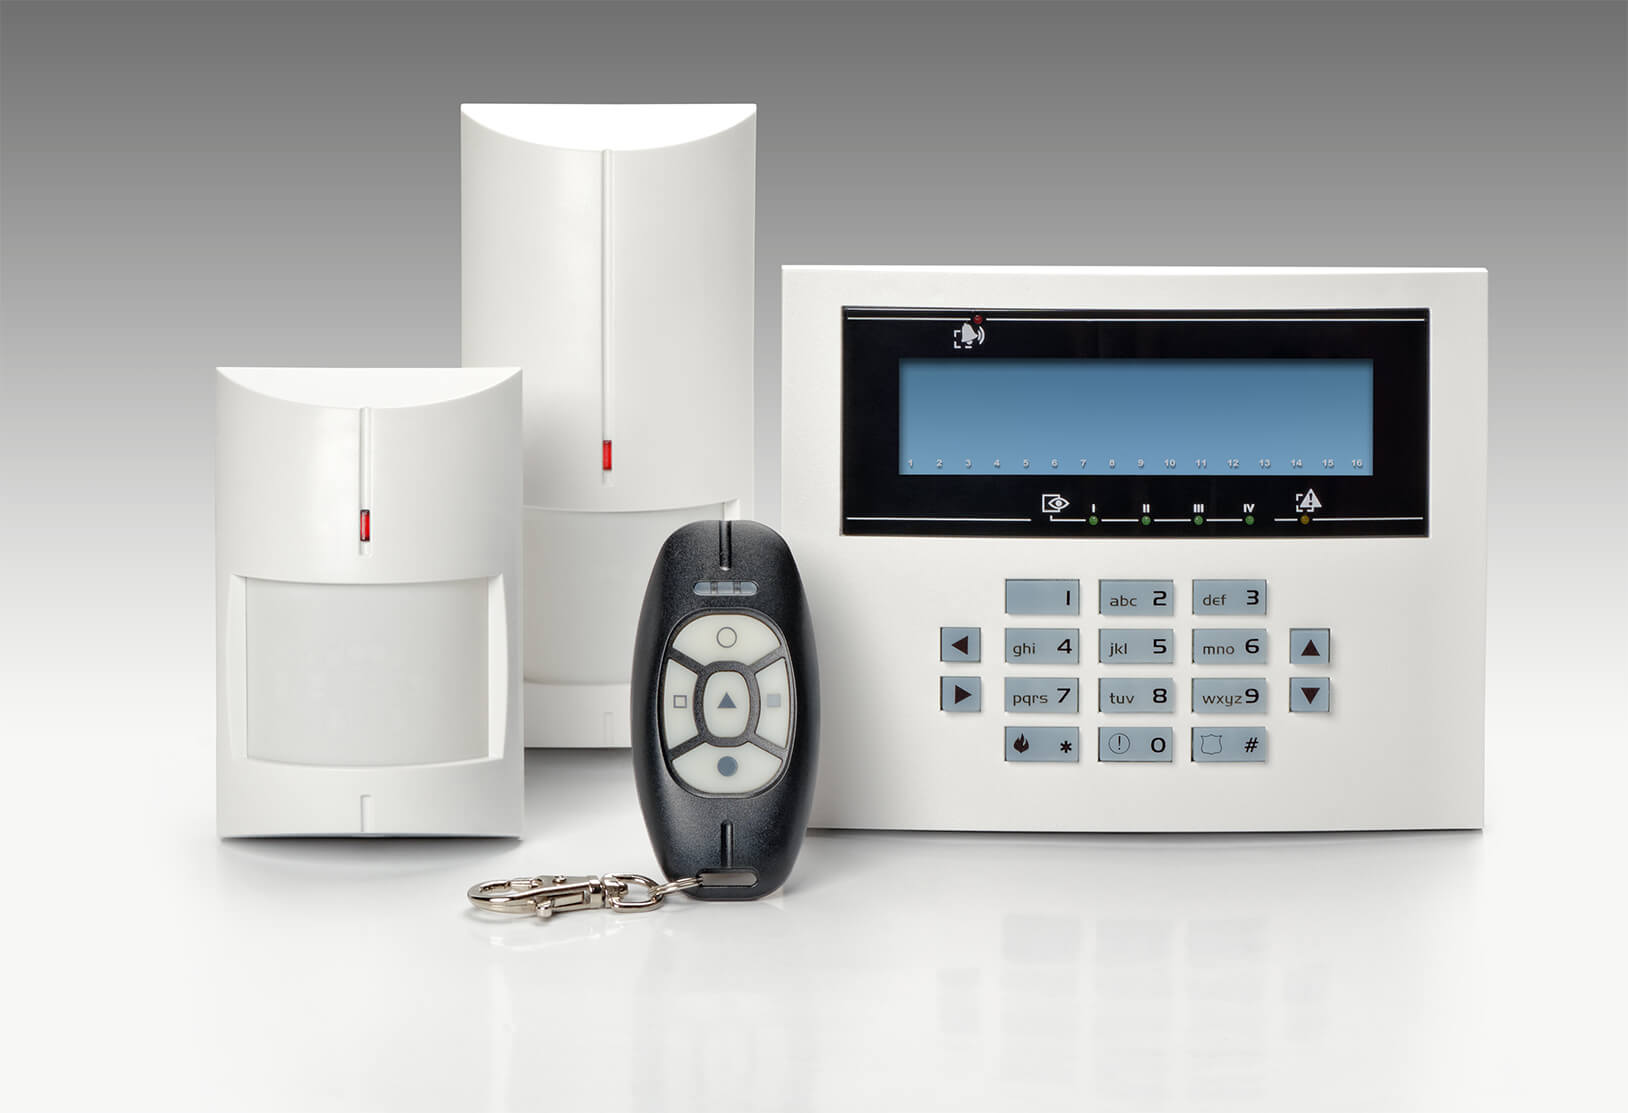 Business & Residential NSI / NACOSS Approved Burglar Alarms In West Kensington W14 - Local West Kensington W14 security company.Call 02078872244 - Dedicated to Safety & Security. Companies, shops and homes ..